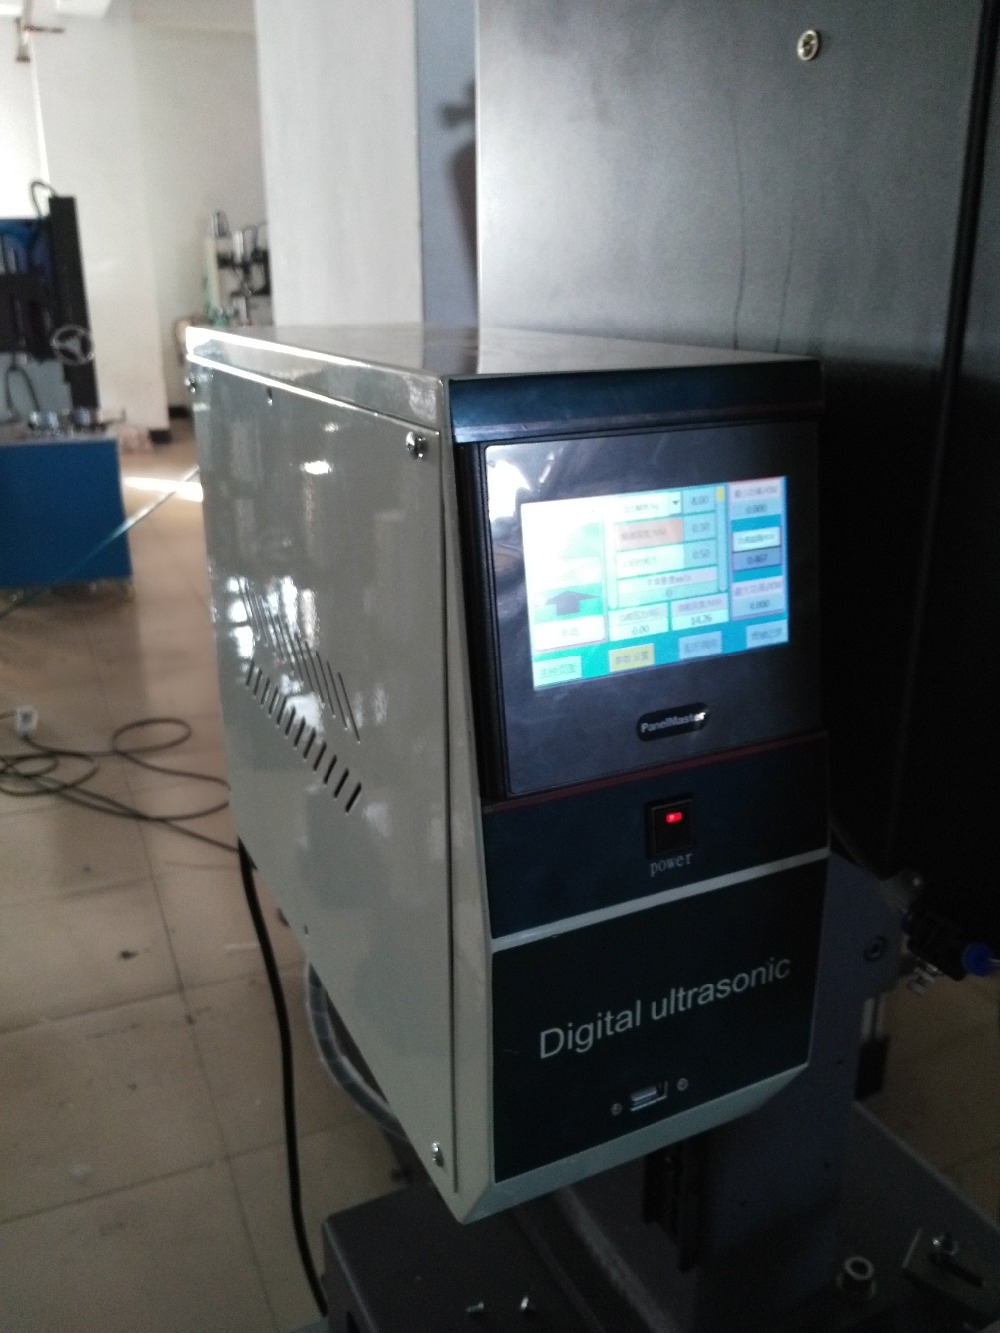 15khz 2600W Vertical Ultrasonic Welding Generator,2600W Ultrasonic Welder Generator,sonics Ultrasonic Welders